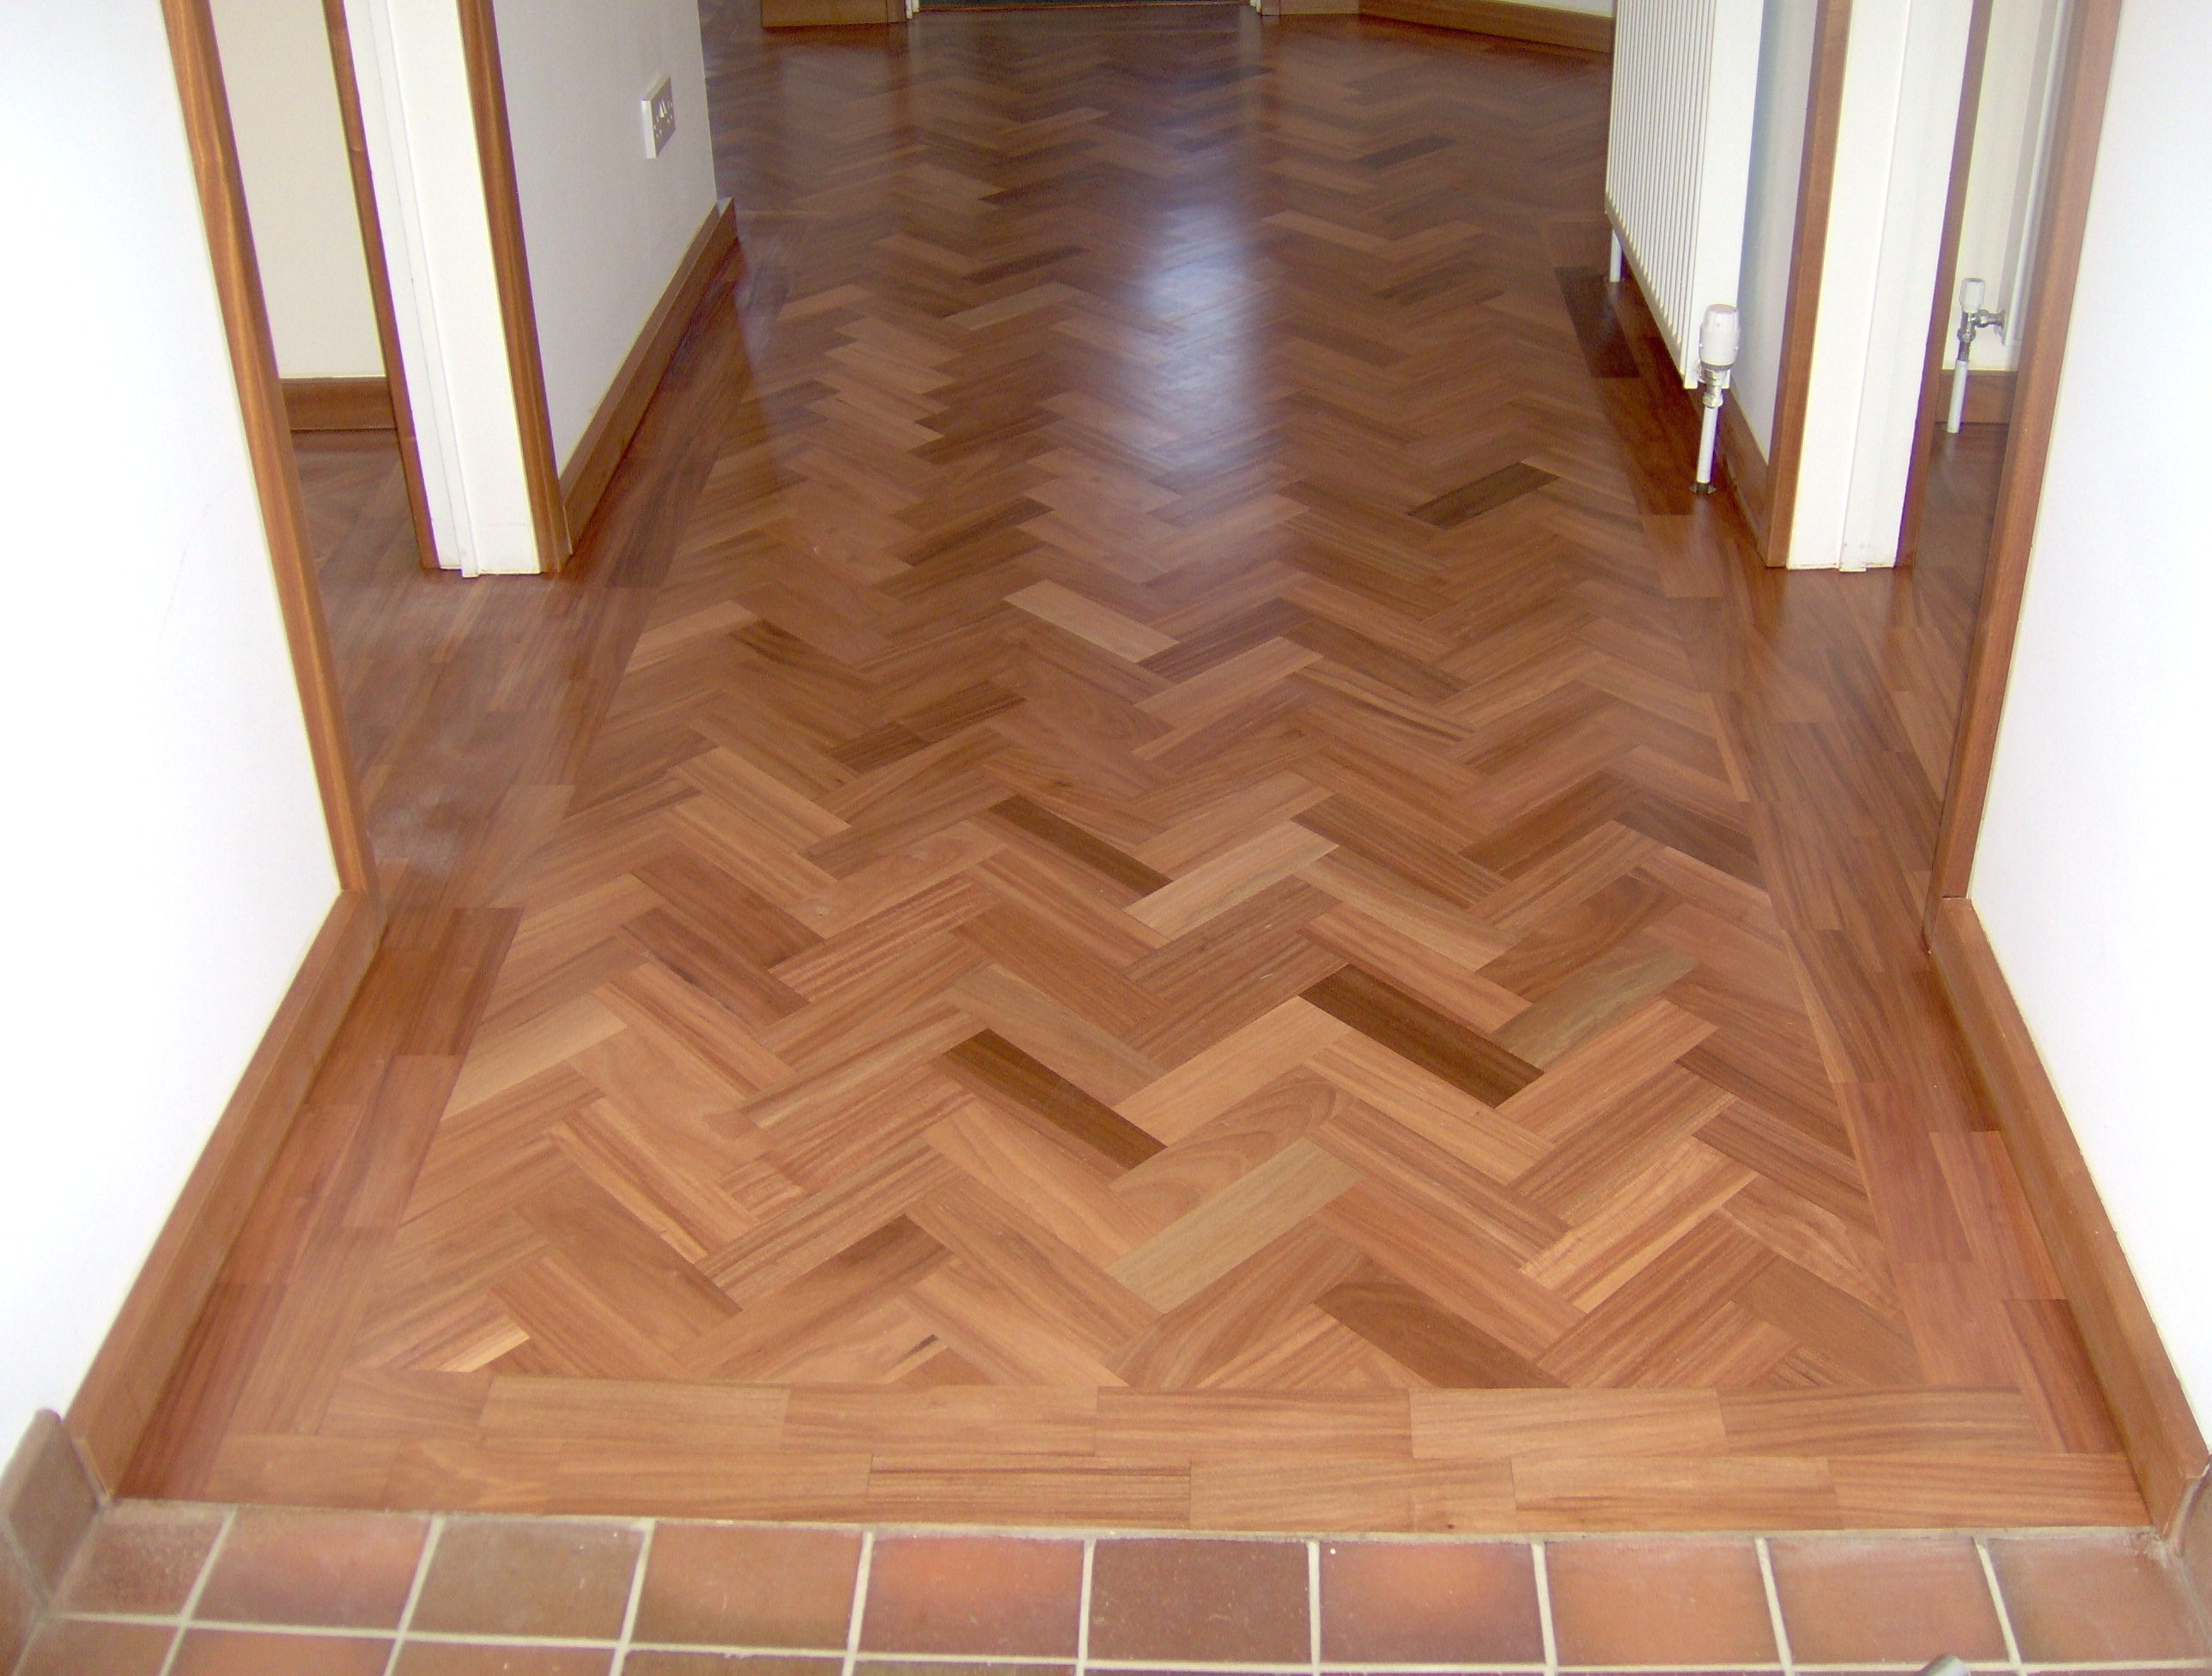 ideas for leftover hardwood flooring of gorgeous reformed home with parkay floor remarkable white wall and pertaining to hallway and bedrooms parquet flooring wooden flooring parkay flooring floors floor design